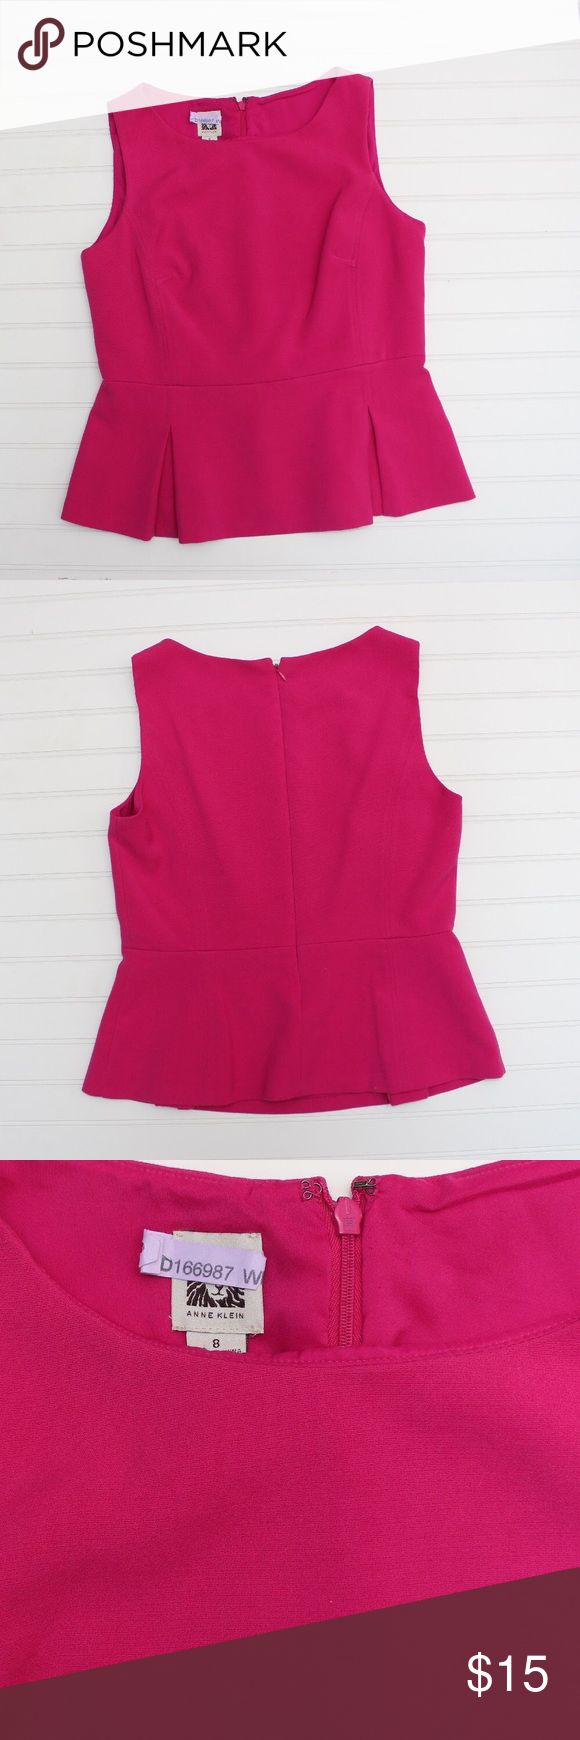 Anne Klein Pink Peplum top I just love peplum tops, I think they're sophisticated yet fun and flirty, waist flattering especially for girls who don't have hips (like me) 😁 pretty color great for spring! Pair this with a white pencil skirt and you're set for Easter or pair it with black and your good for the office, wear it with skinny jeans and some pink floral shoes and you have a fun flirty happy hour outfit. Lots of ways to wear this versatile top. Anne Klein Tops Blouses